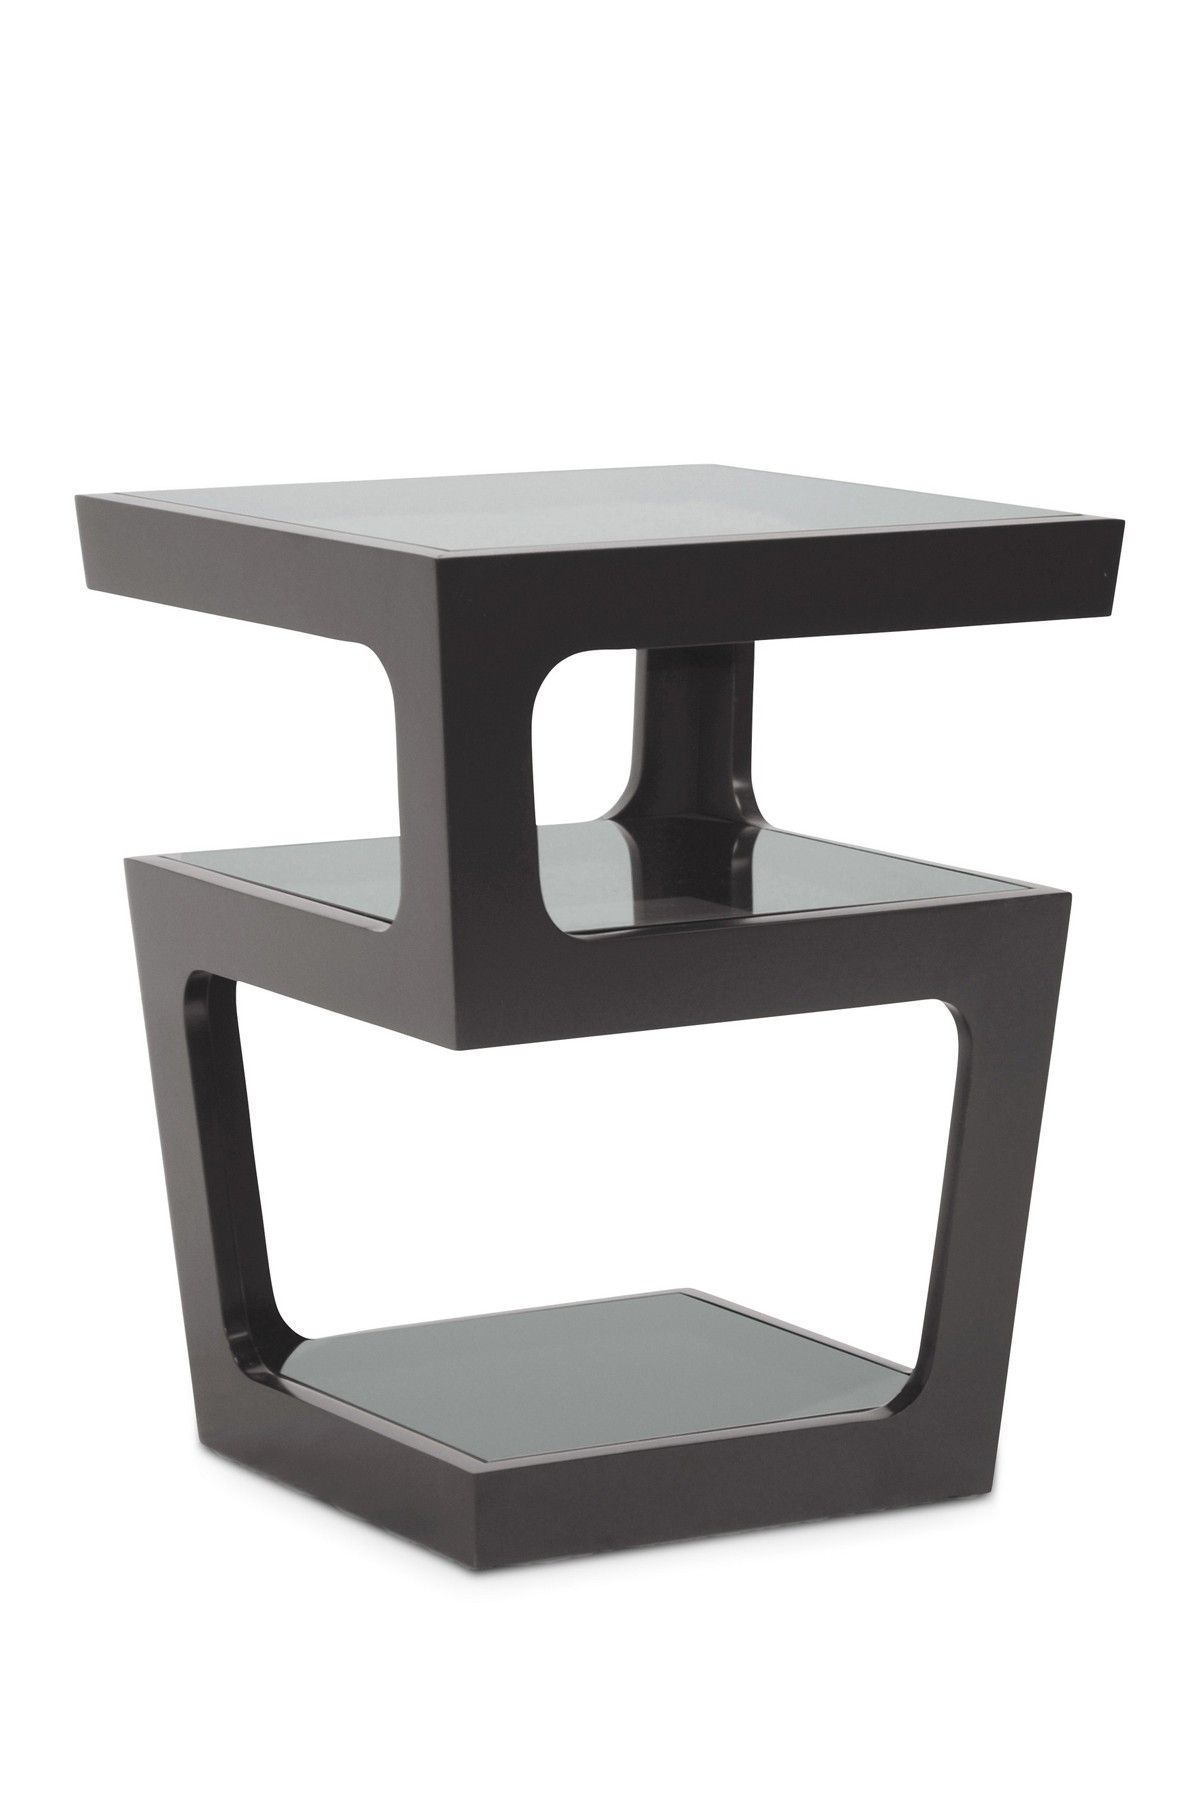 clara black modern end table with tiered glass shelves products contemporary tables lexington cottage furniture unfinished oak tops brown leather sofa blue cushions round metal